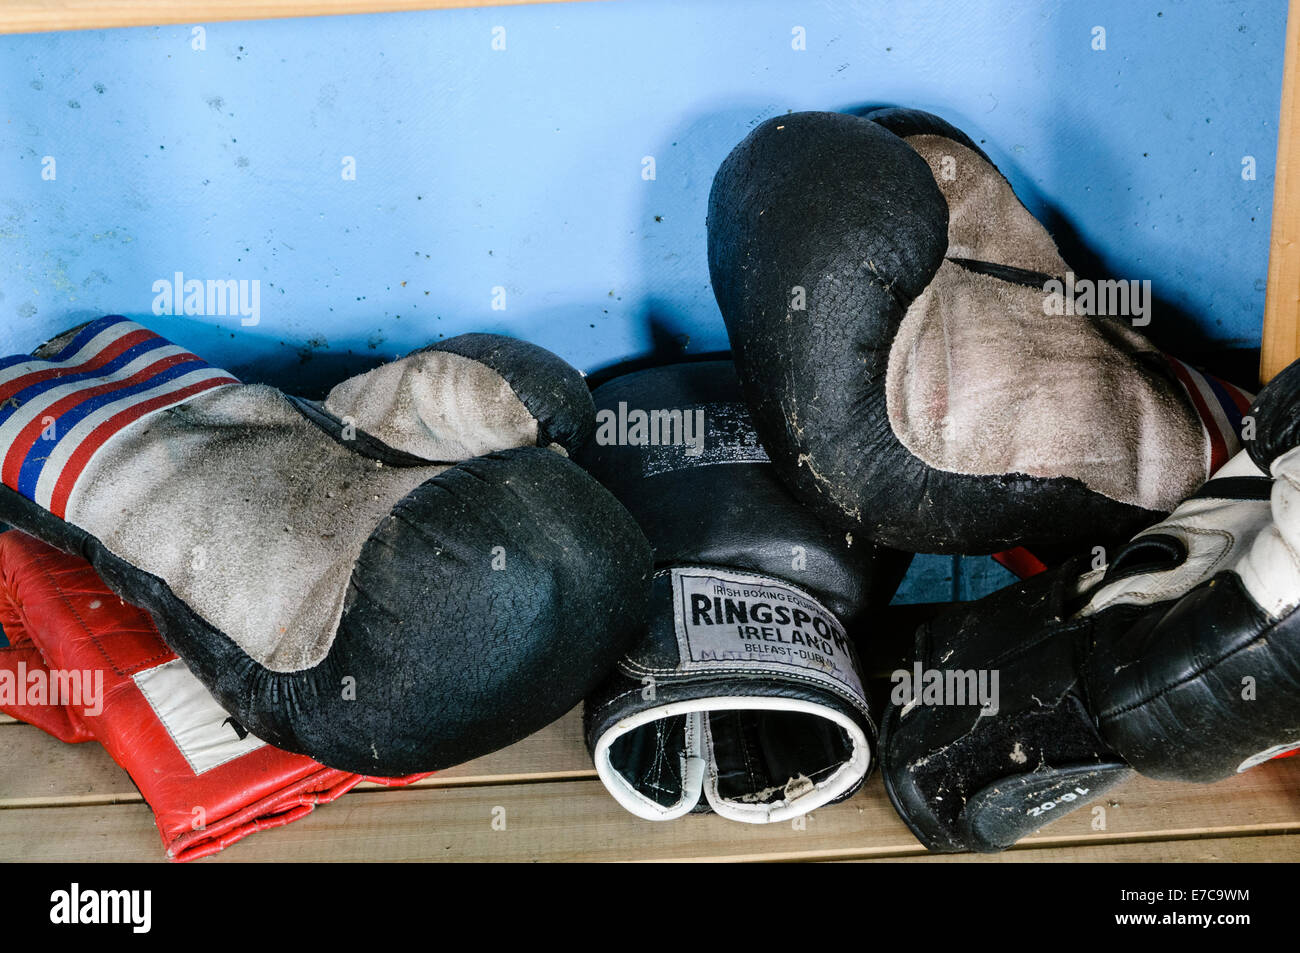 Old boxing gloves in a derelict boxing club - Stock Image